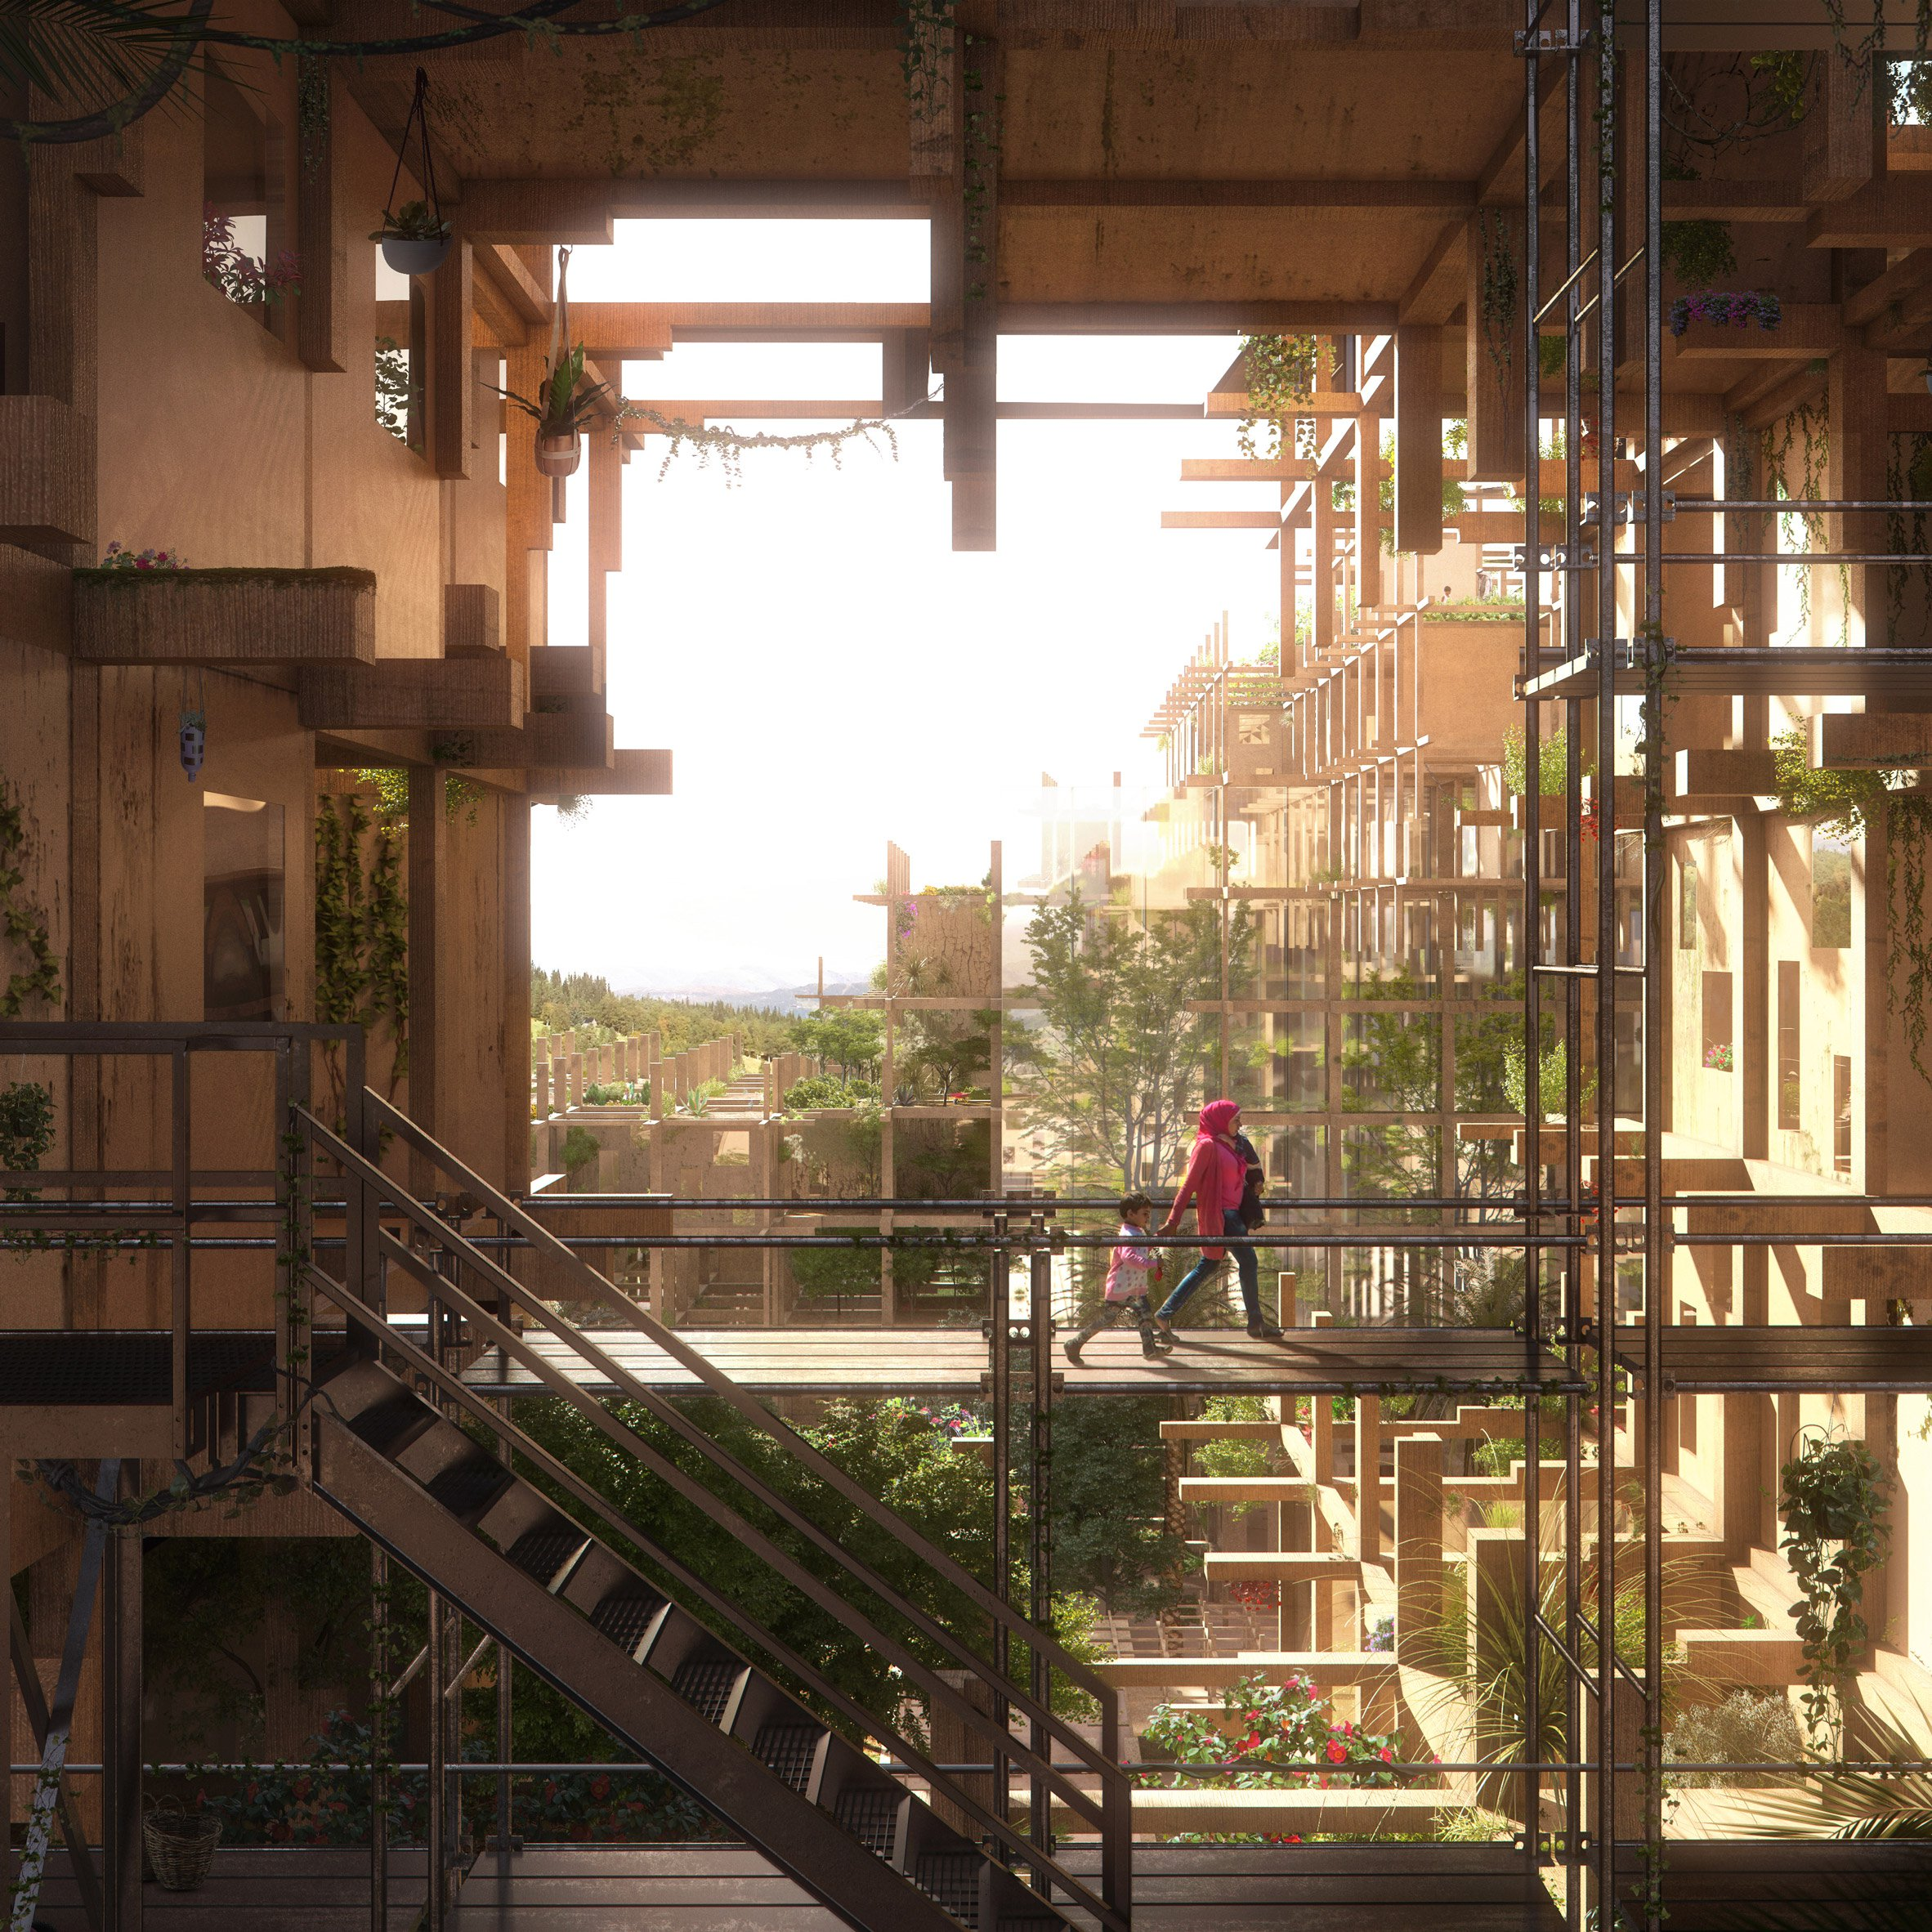 ... Shelter On The Edge, Aleppo, Syria, By Design And More International  (World Architecture Festival) ...